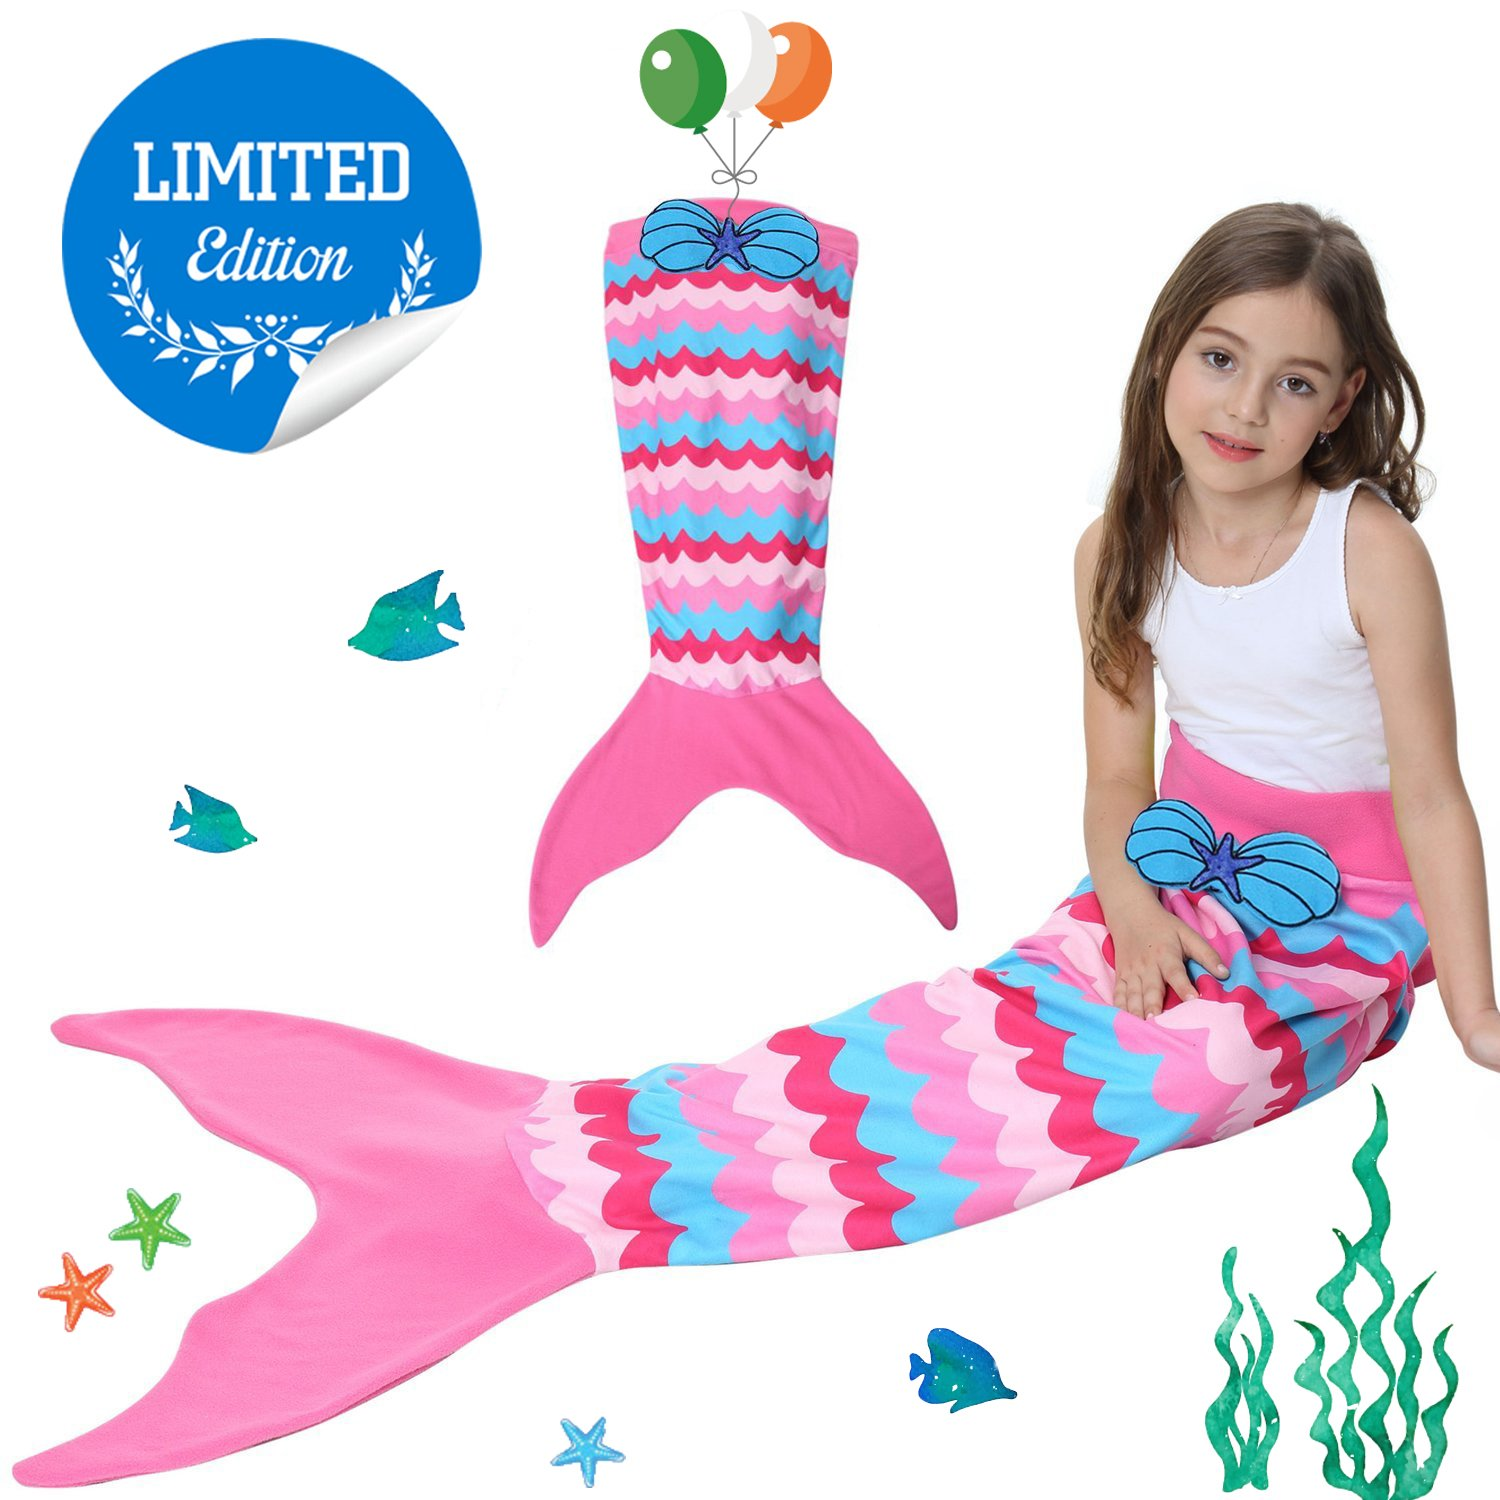 Kids Mermaid Tail Blanket with Scale Pattern,Gilrs Mermaid All Season Sleeping Blankets,Kids' Bedding Toys Sleep Bags Comforter for Air Condition Sofa,Home,Travel,Camping Birthday Gifts (A Pink cake) by CHARMCZ (Image #1)